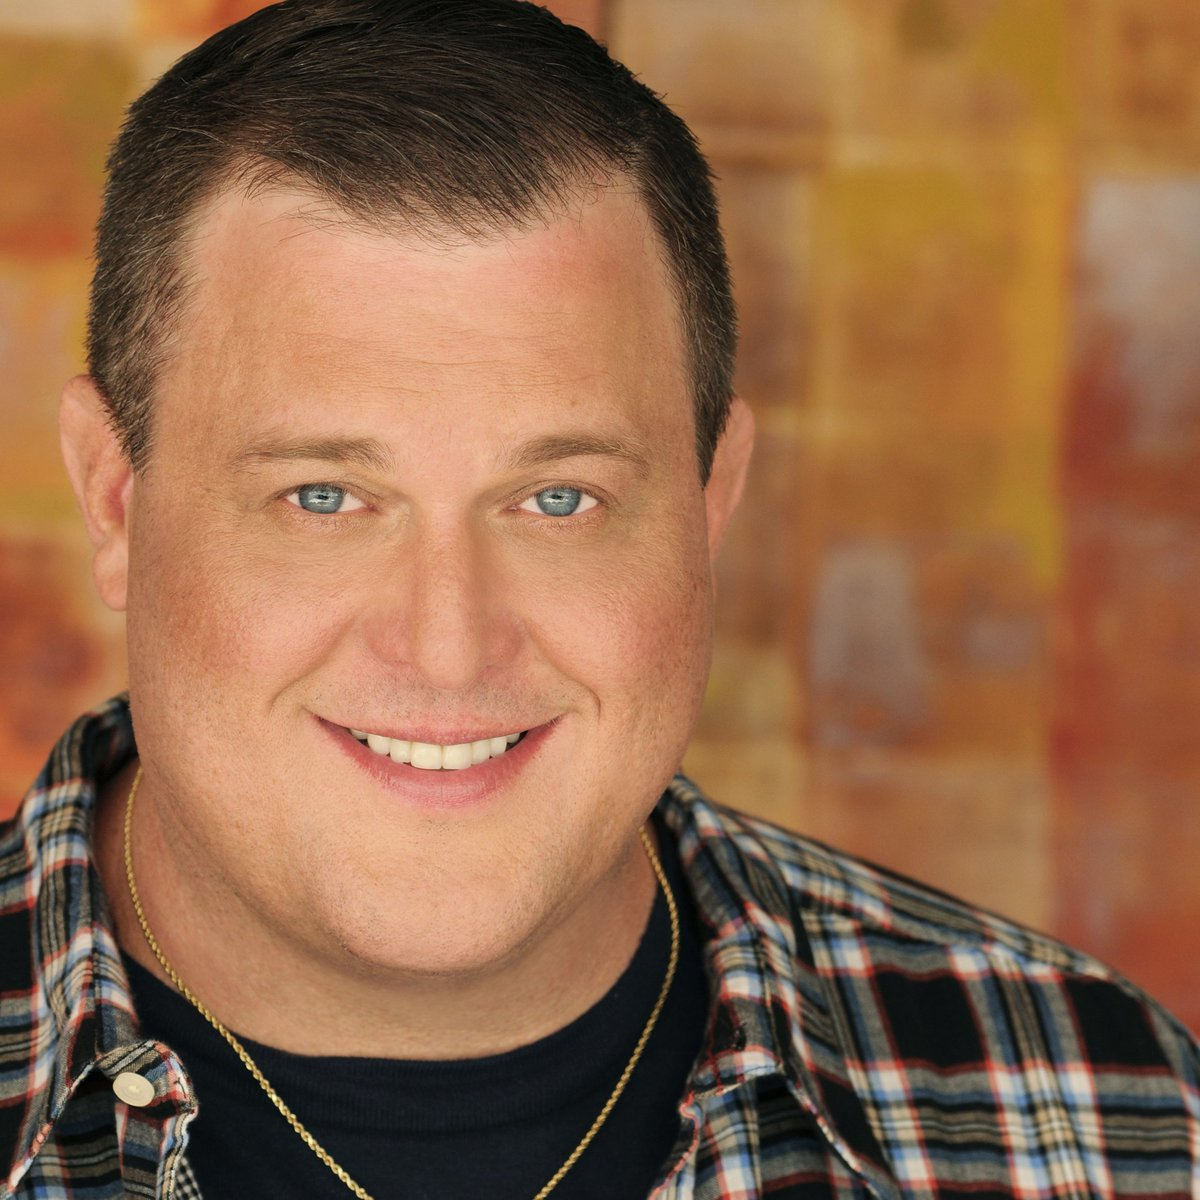 .@BillyGardell will be at the EQC on 5/14 and he's really, really funny. See you there? https://t.co/73MCEixHoY https://t.co/lonNgSipsx